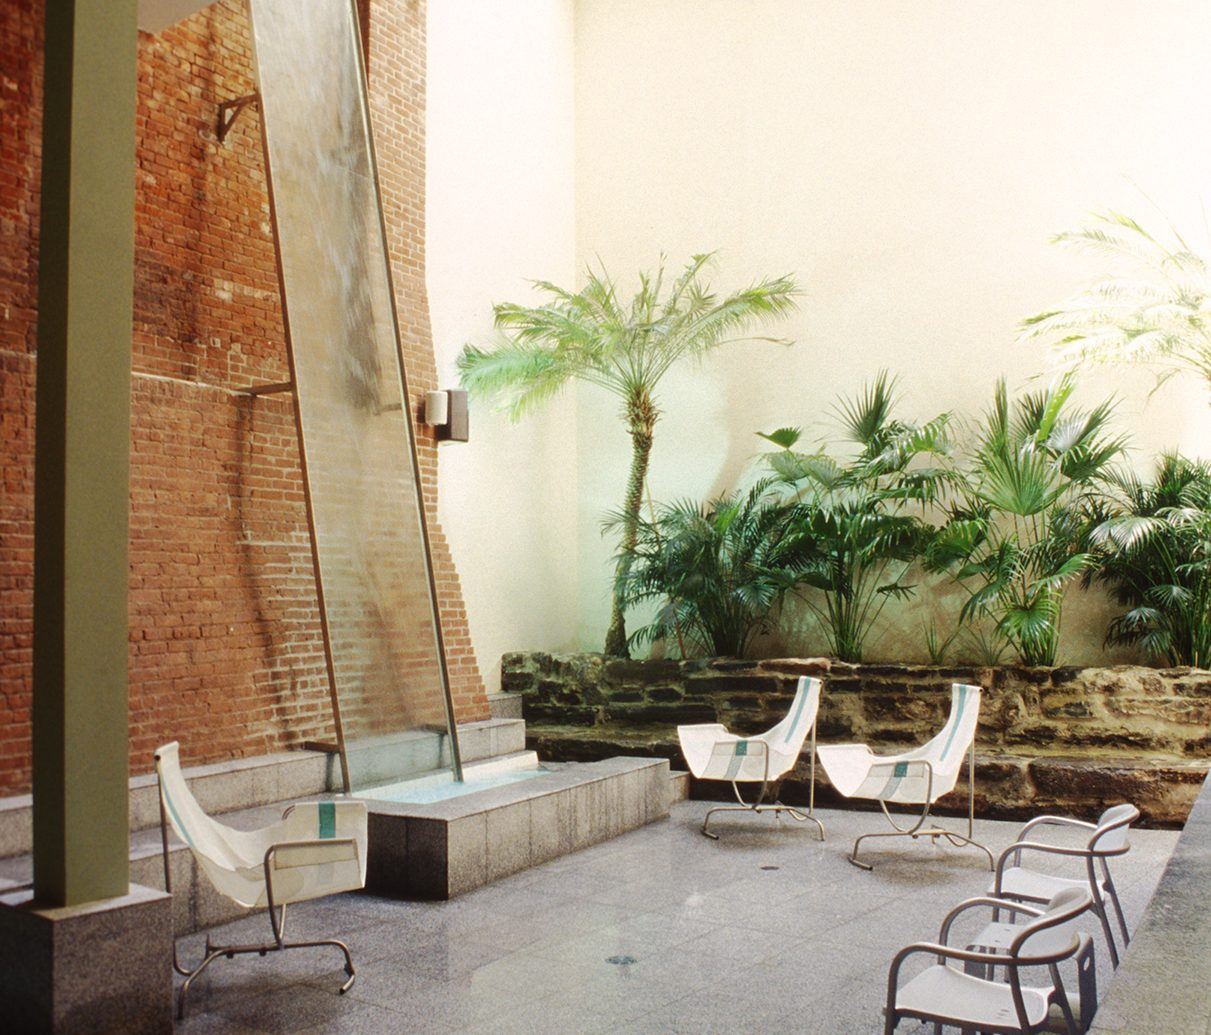 Image of indoor seating area next to spa pool with house plants and ceiling window at Great Jones spa